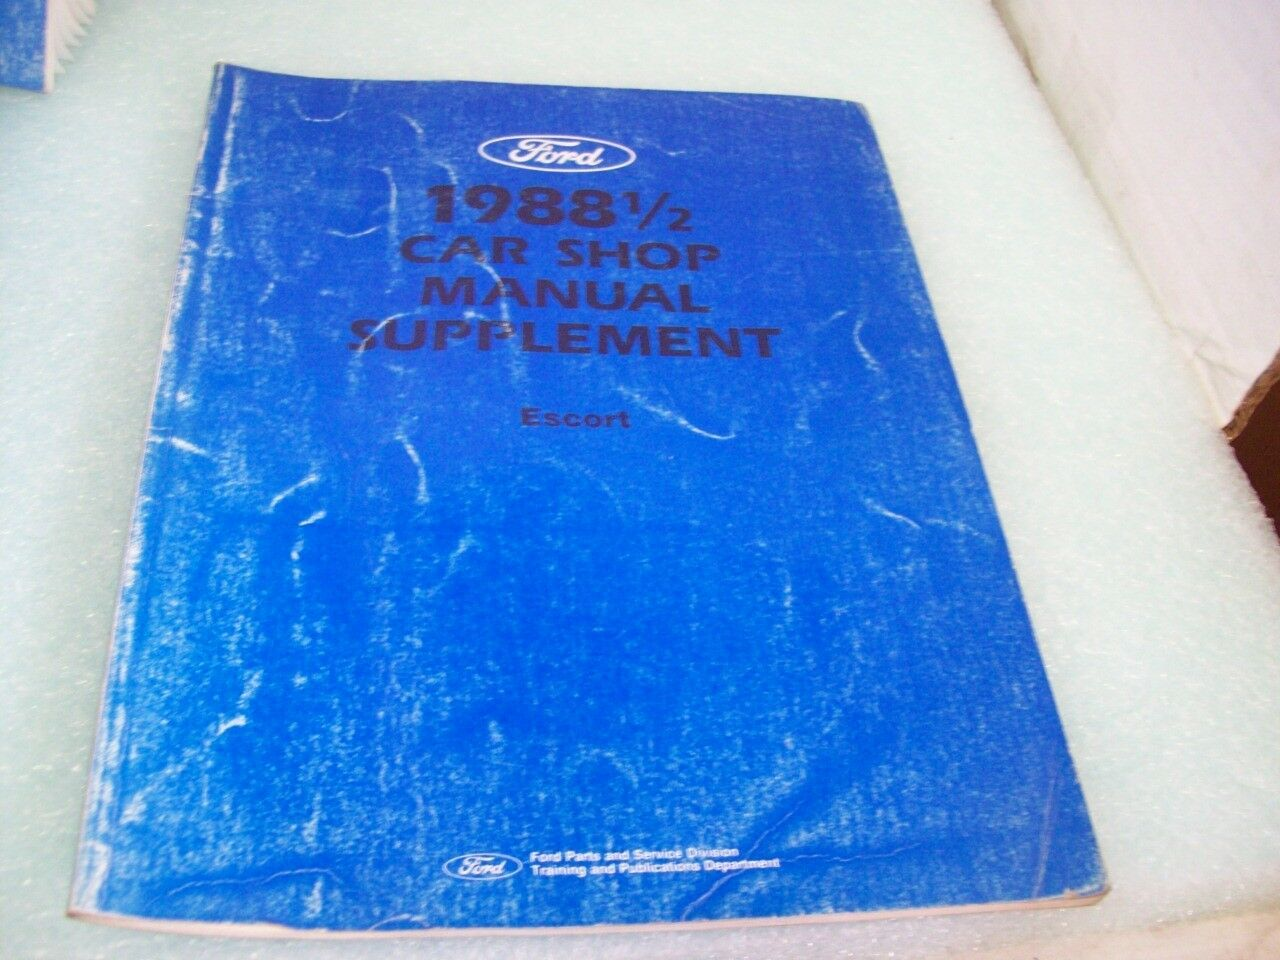 SHOP MANUAL ESCORT SERVICE REPAIR 1988 FORD ELECTRICAL BOOK HAYNES CHILTON